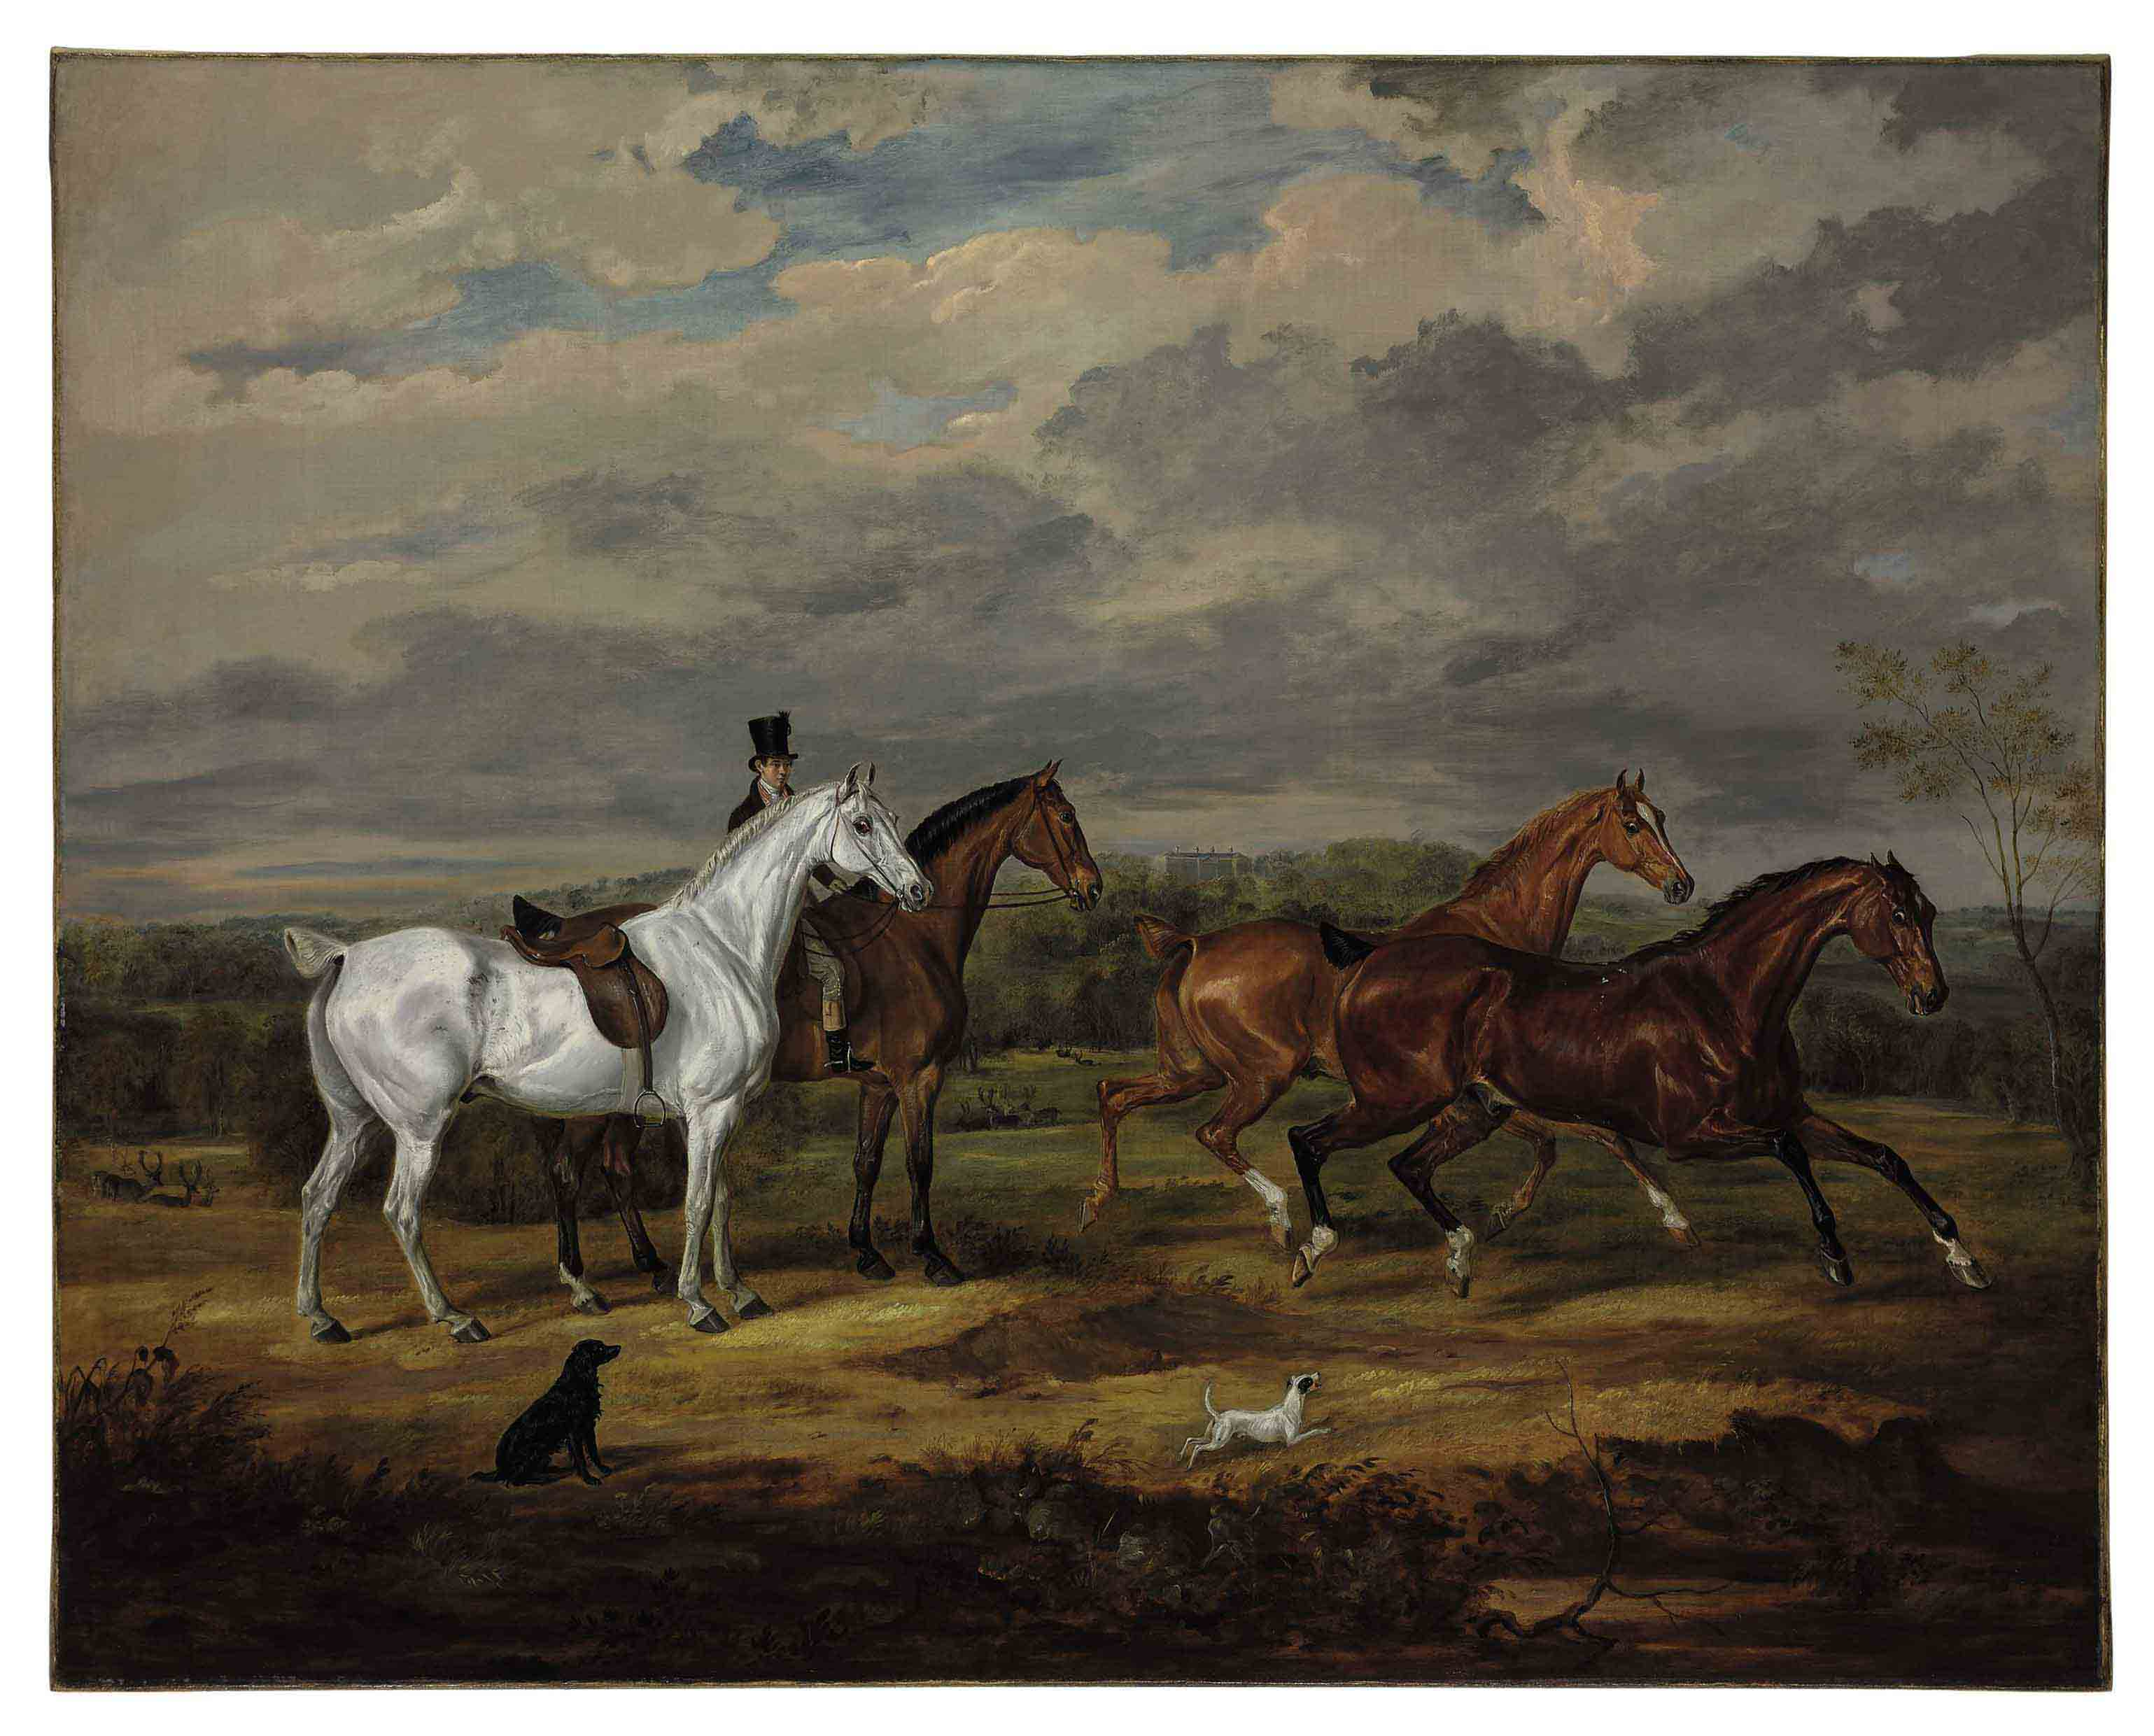 Favorite Hunters of Richard William Penn, 1st Earl Howe (1796-1870), with Gopsall Hall, Leicestershire in the background